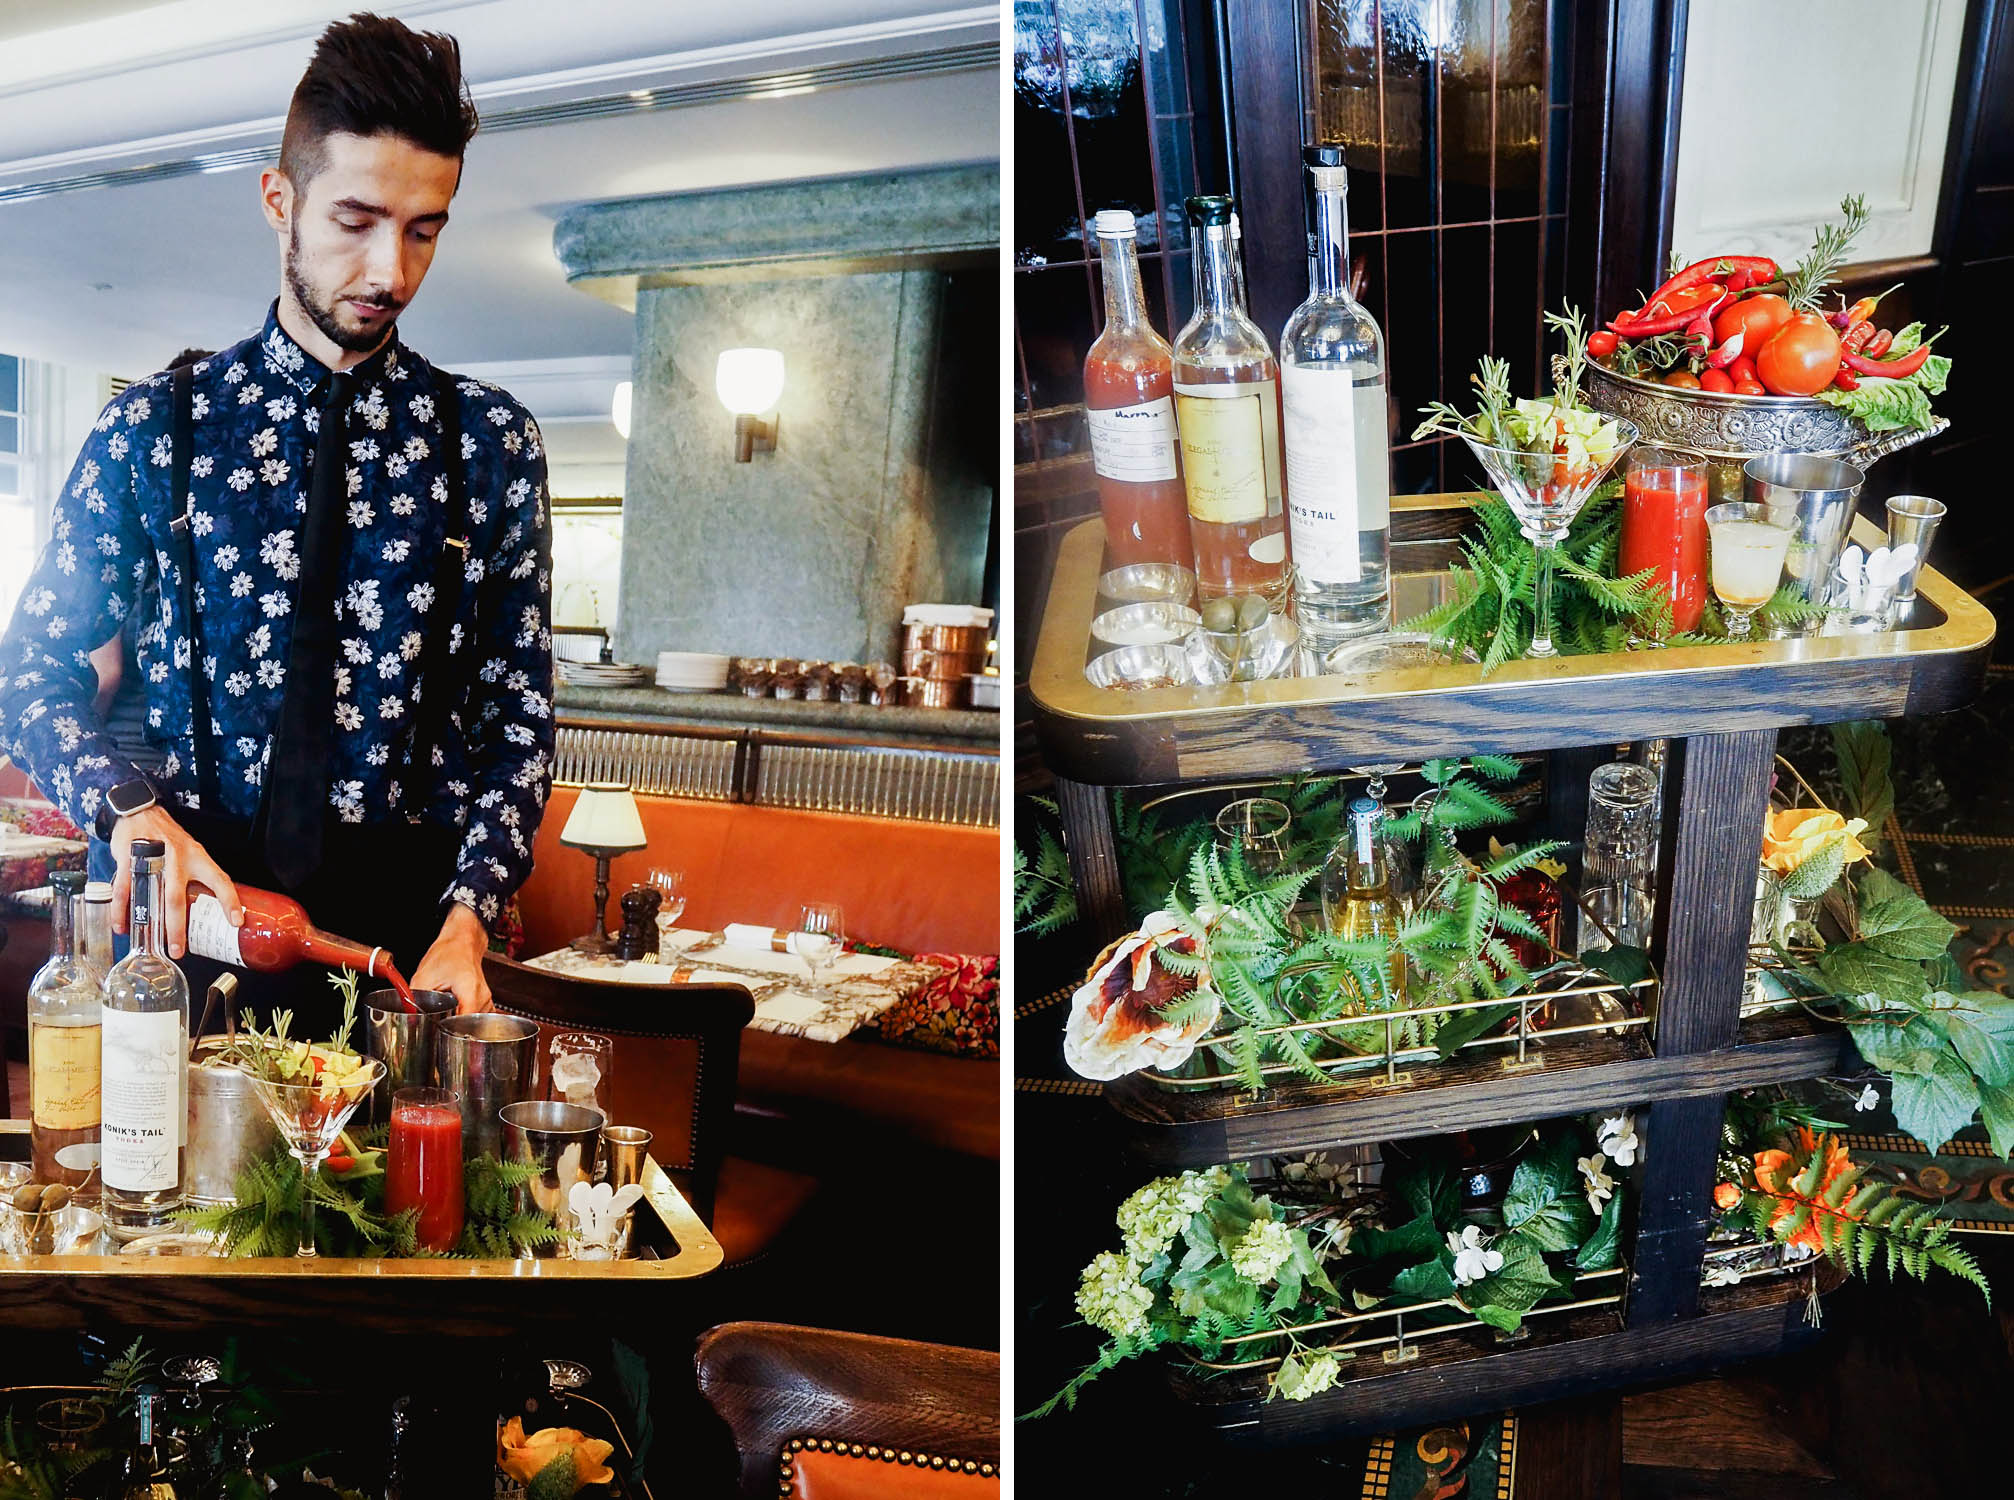 The Bloody Mary cart for brunch at 34 Mayfair, a modern grill restaurant in central London